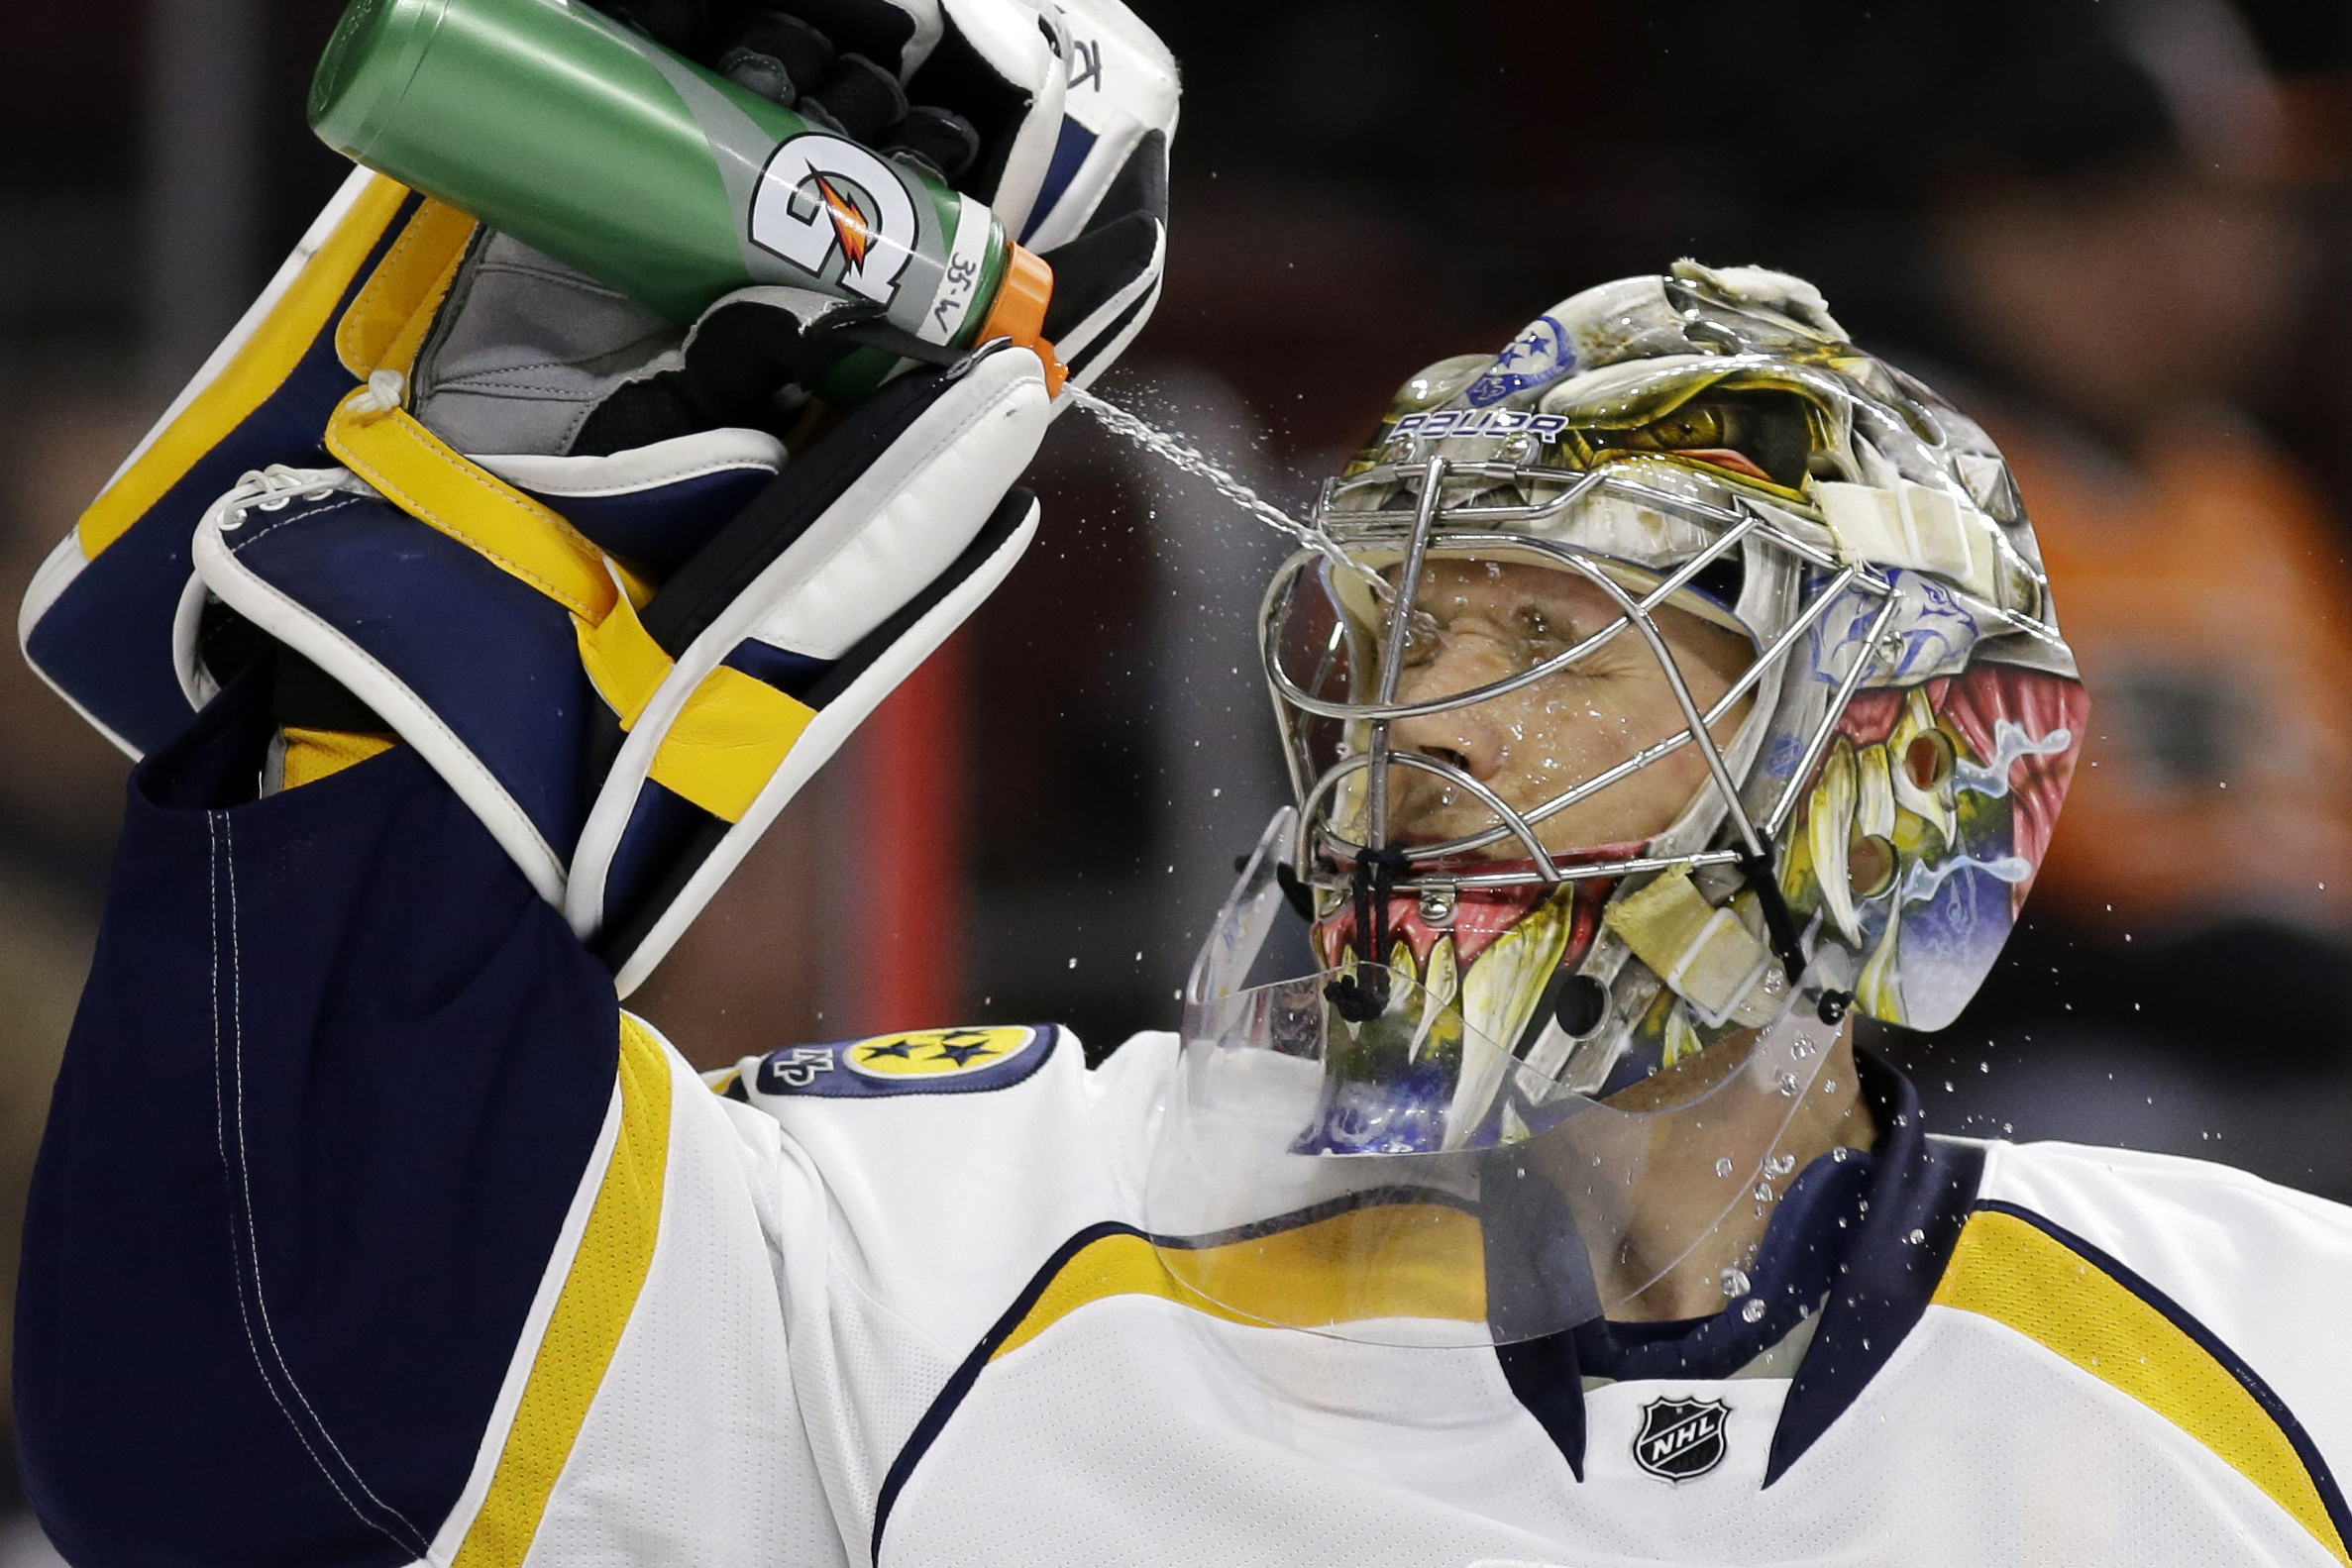 FILE - In this Feb. 21, 2015, file photo, Nashville Predators' Pekka Rinne, of Finland, squirts himself with water before the second period of an NHL hockey game against the Philadelphia Flyers in Philadelphia. Speculation started even before the Nashvill